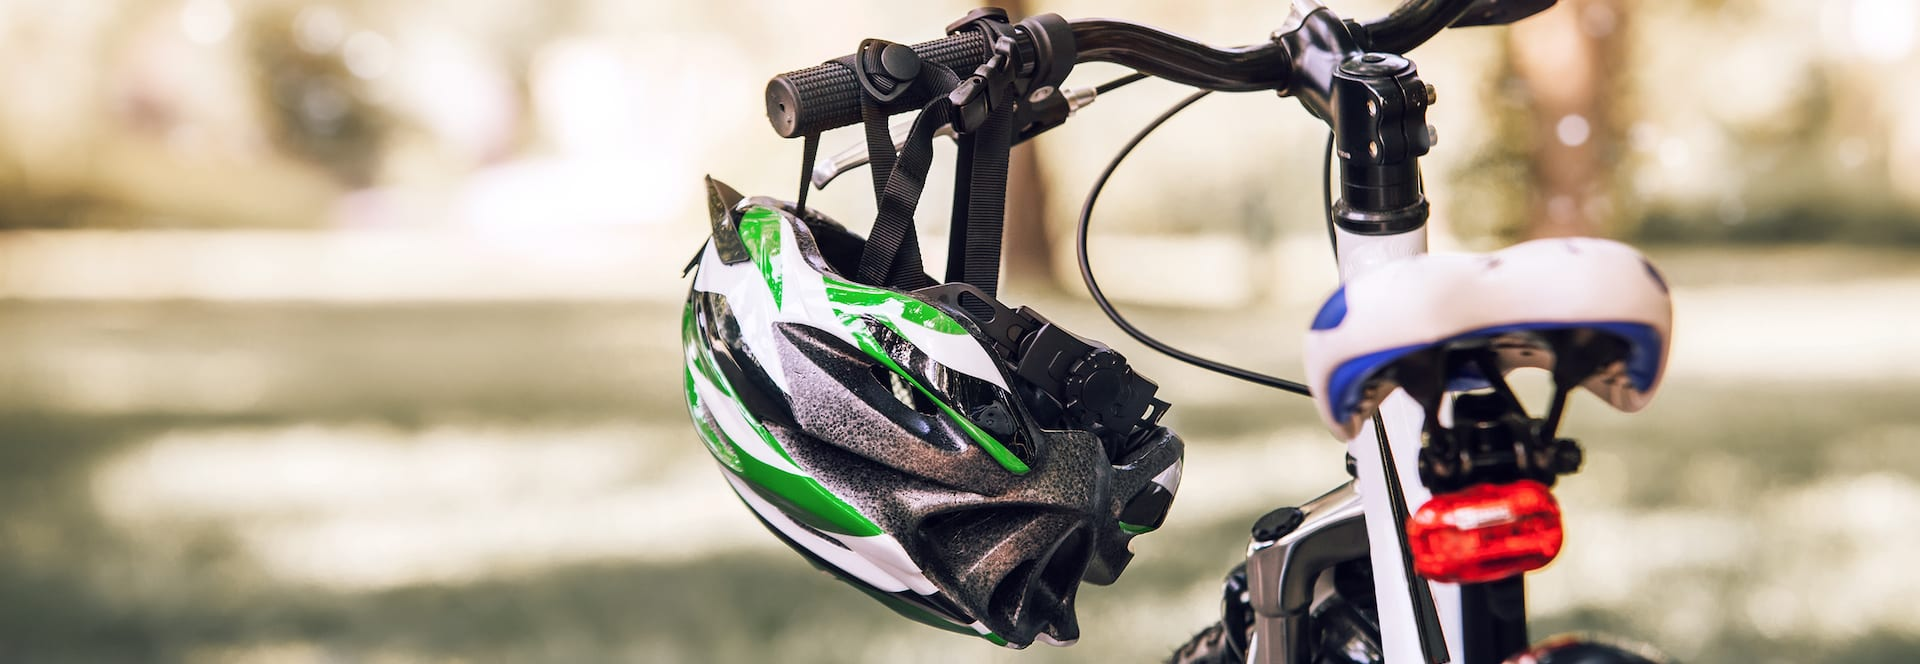 BIKE HELMET TECHNOLOGIES THAT MAY SAVE YOUR LIFE